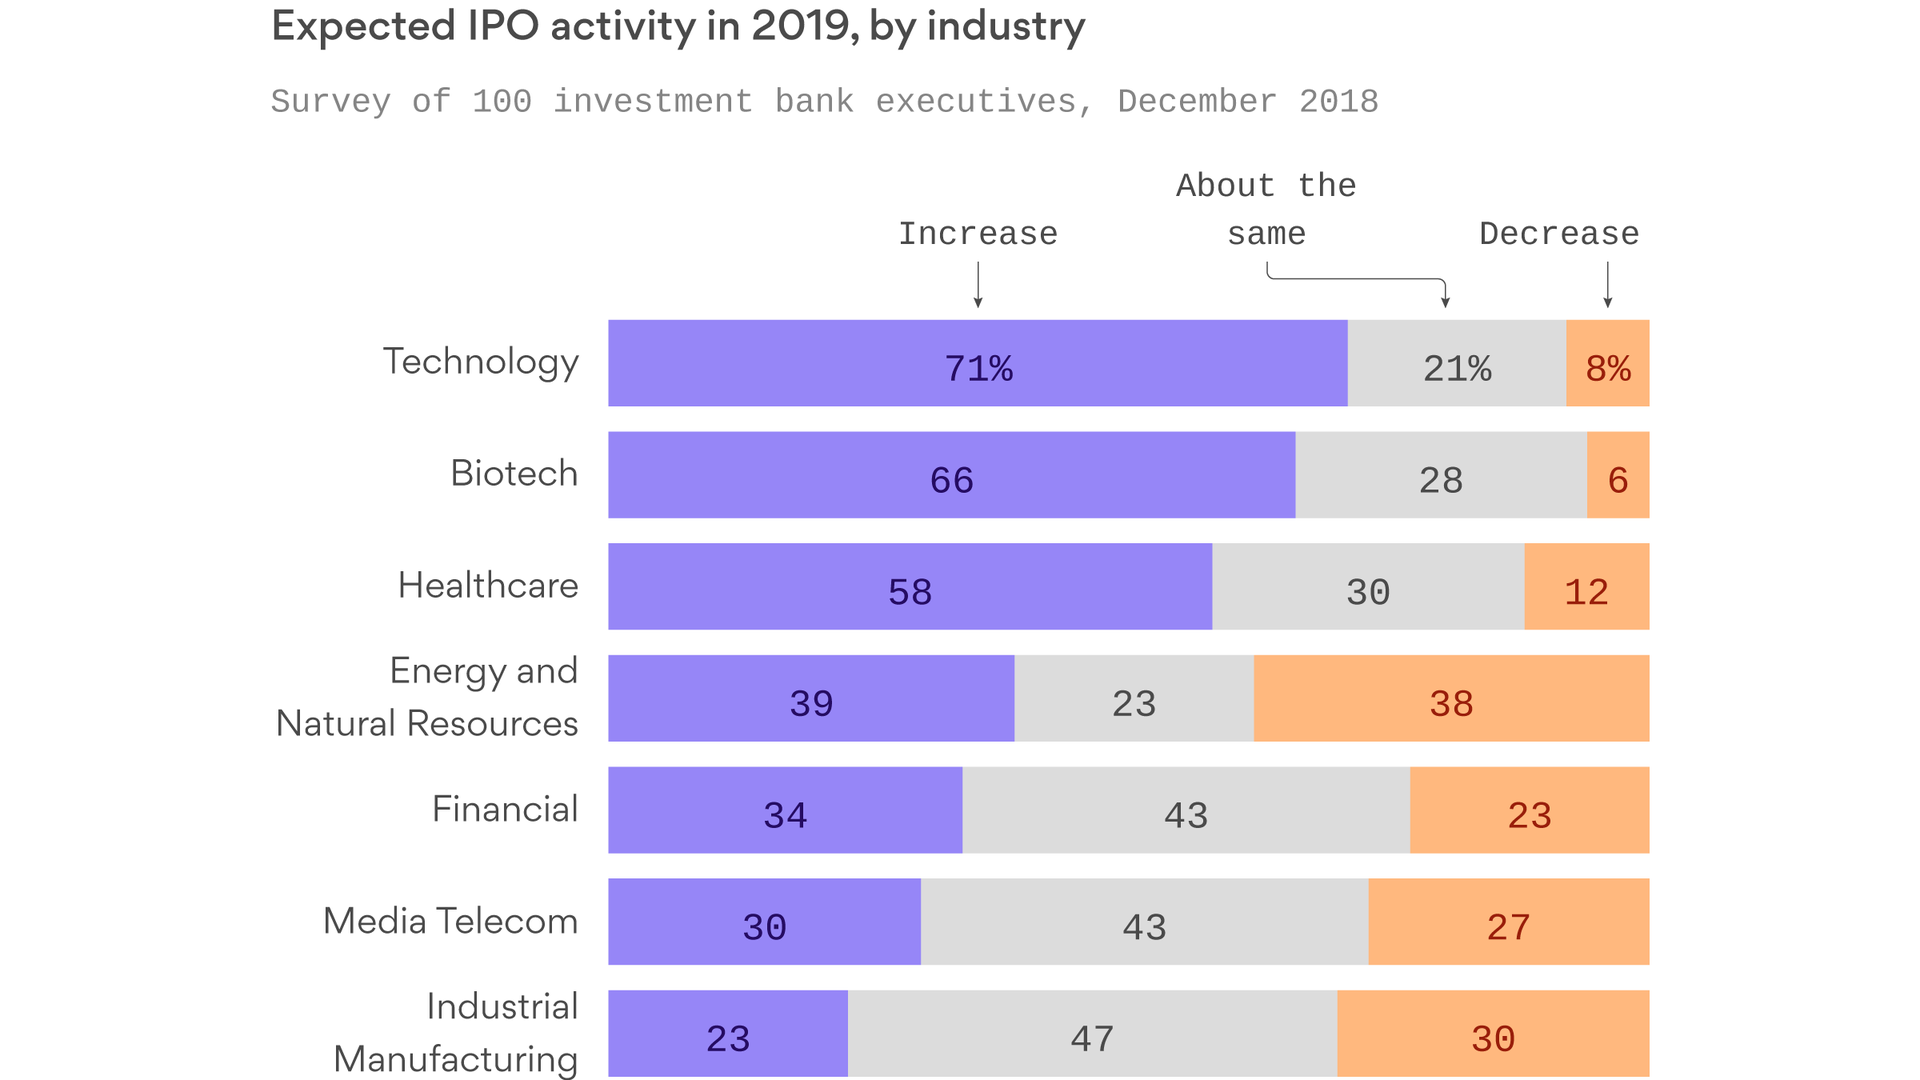 2019 is expected to be a good year for IPOs - Axios